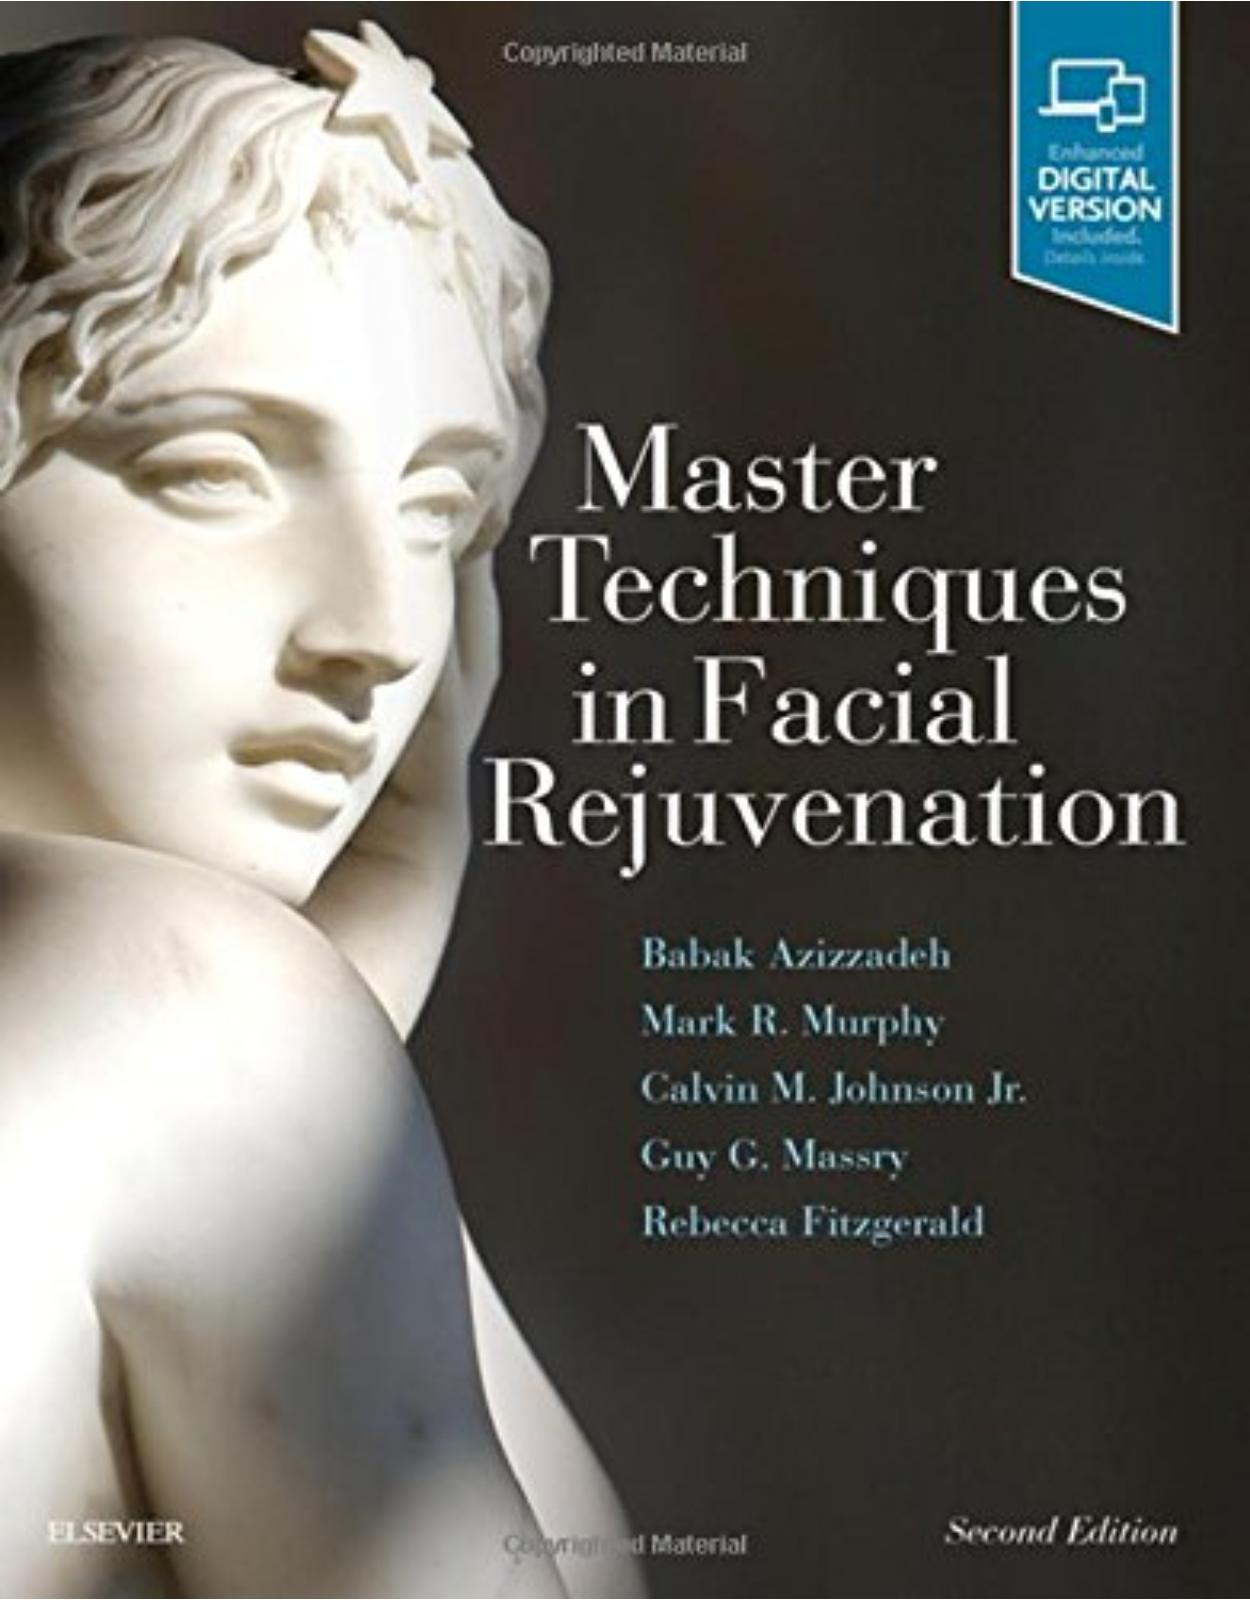 Master Techniques in Facial Rejuvenation, 2e